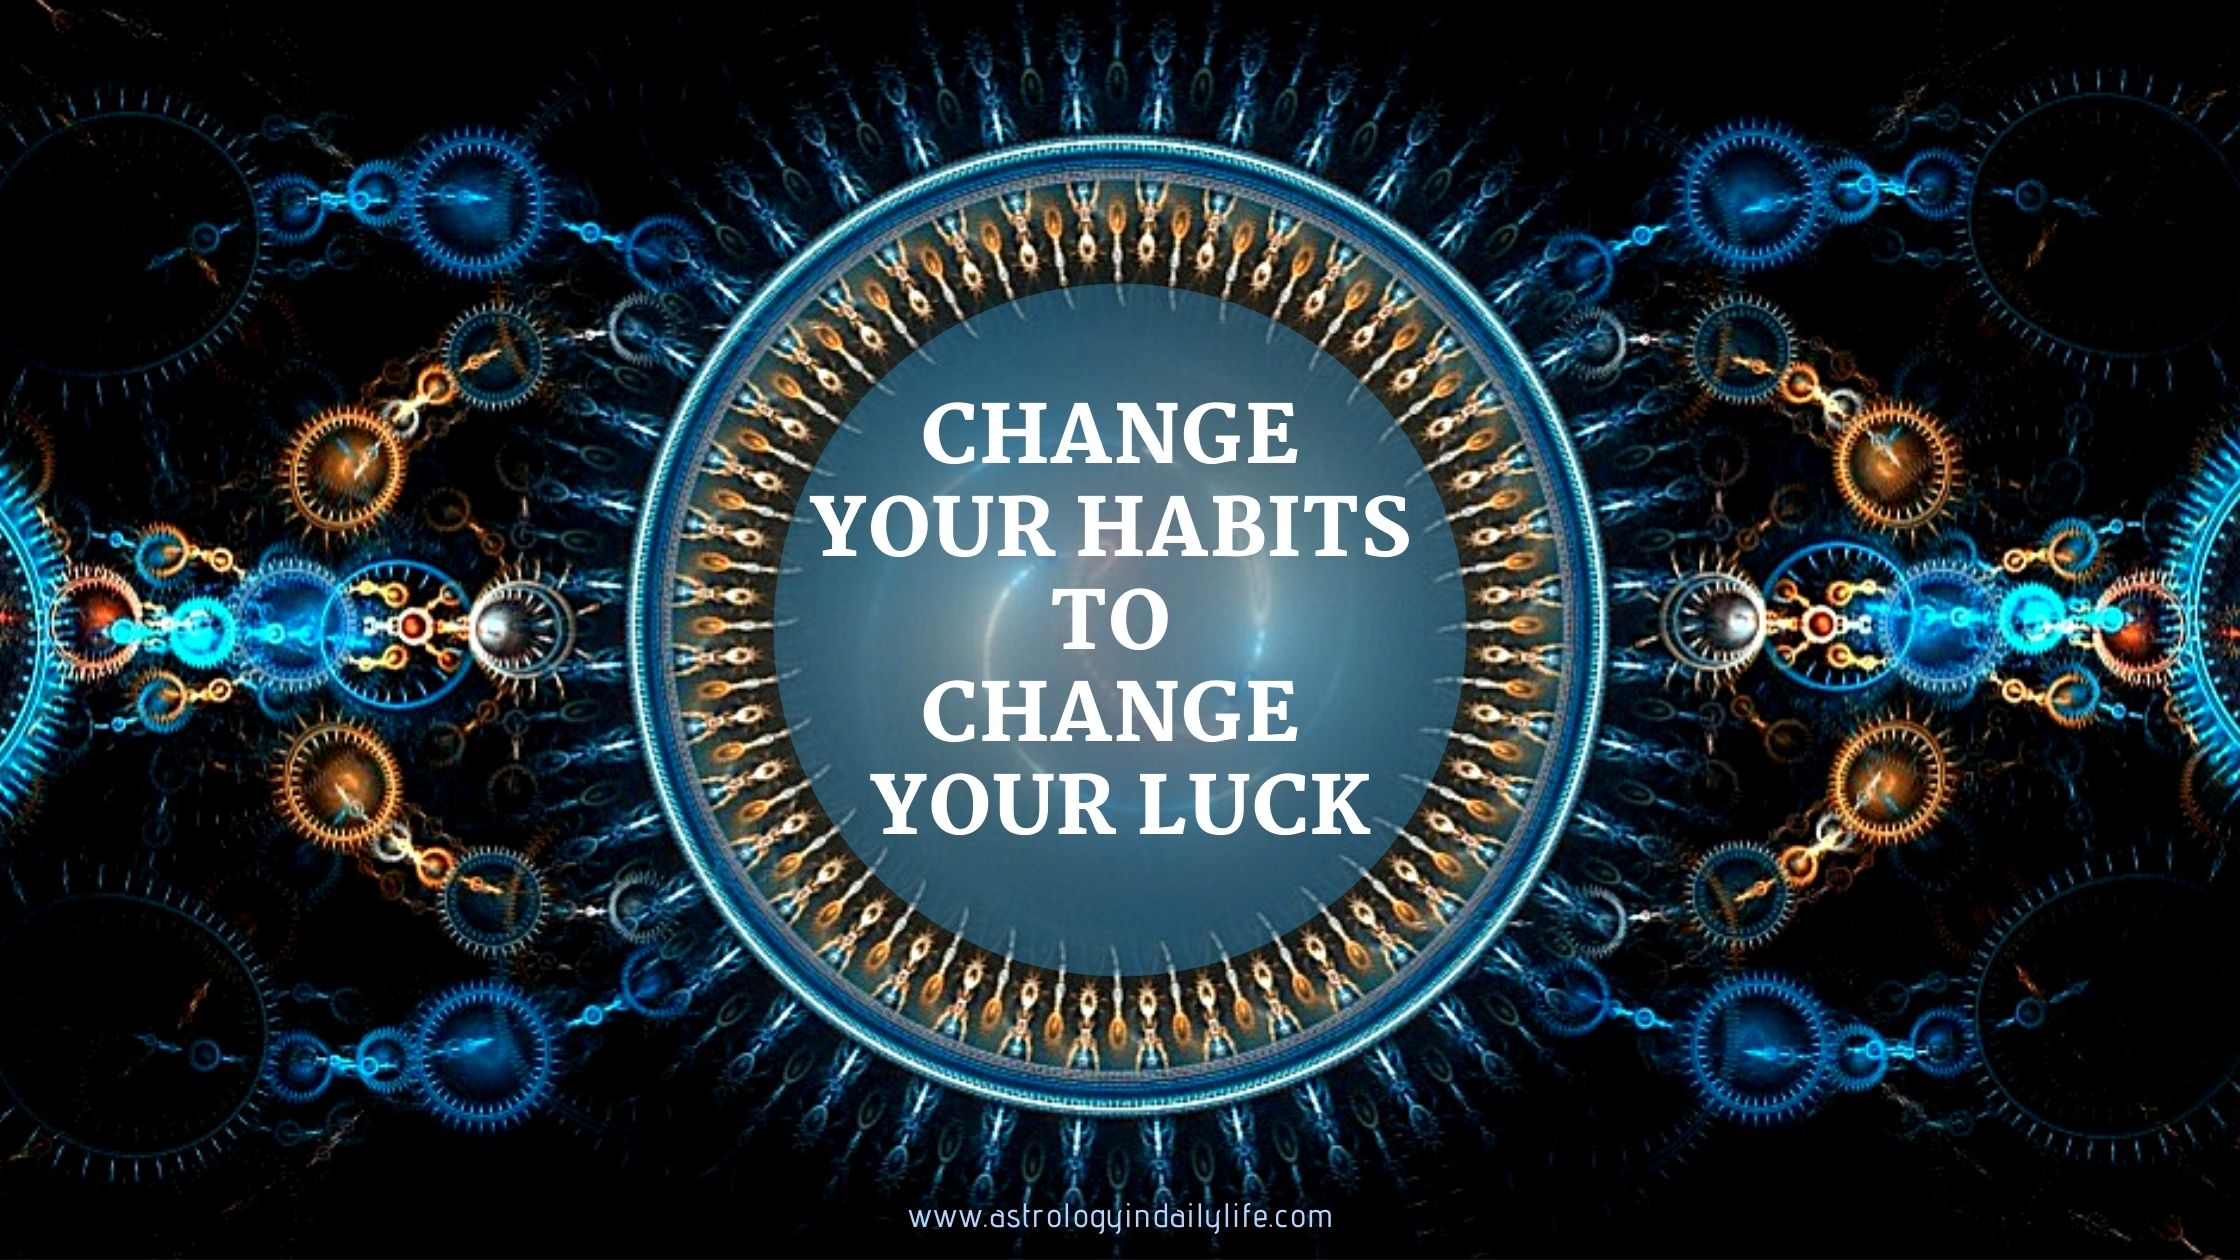 CHANGE YOUR HABITS – CHANGE YOUR LUCK